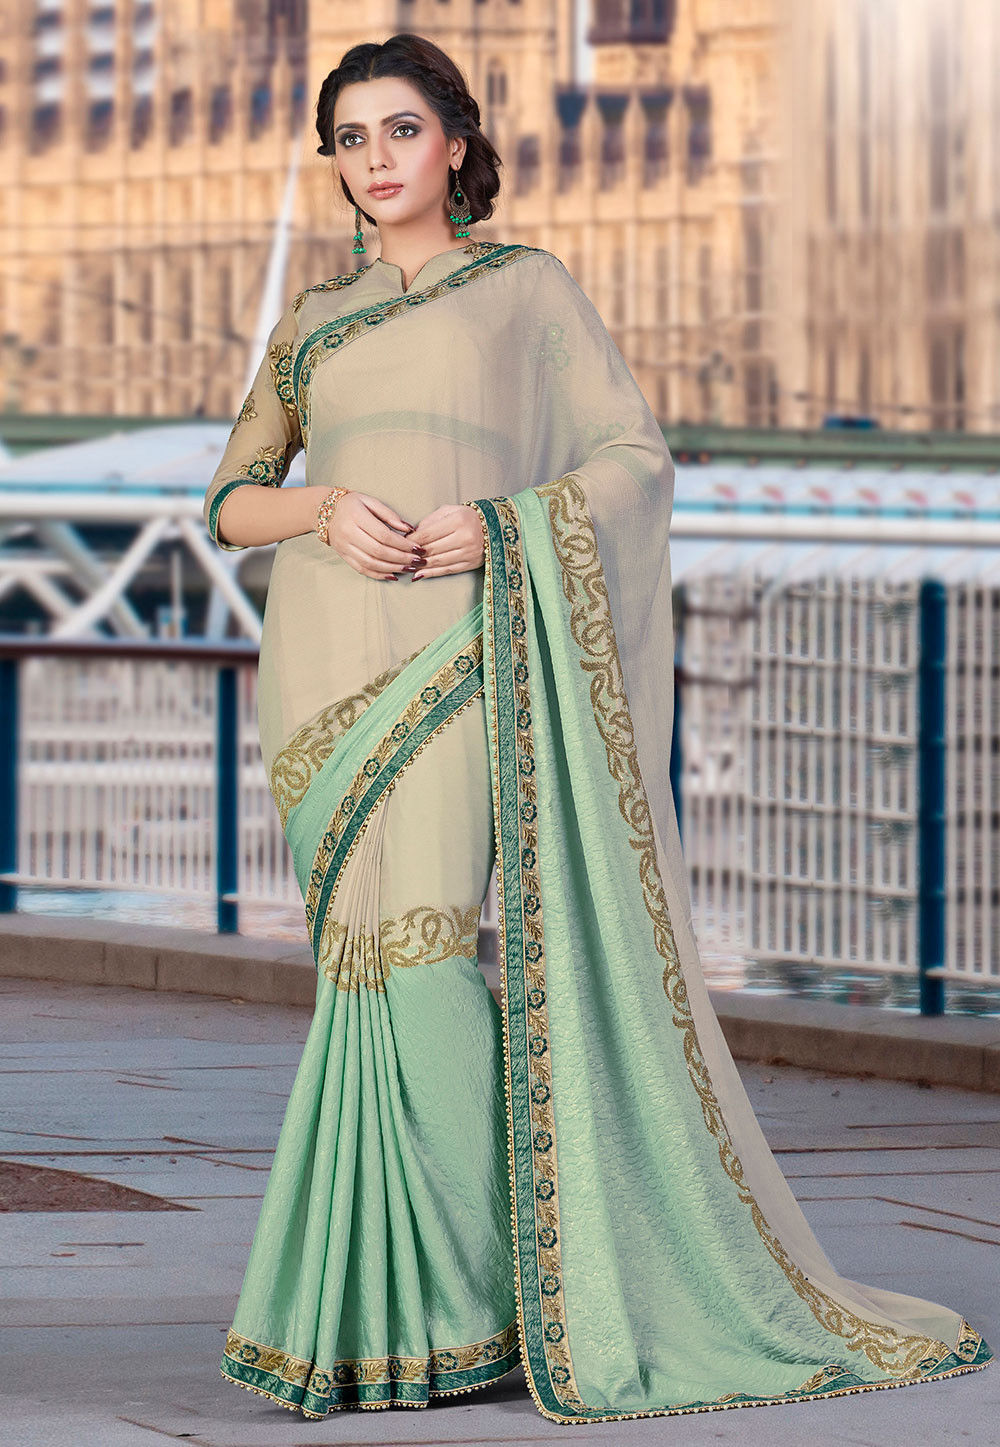 Embroidered Chiffon Saree in Beige and Light Green